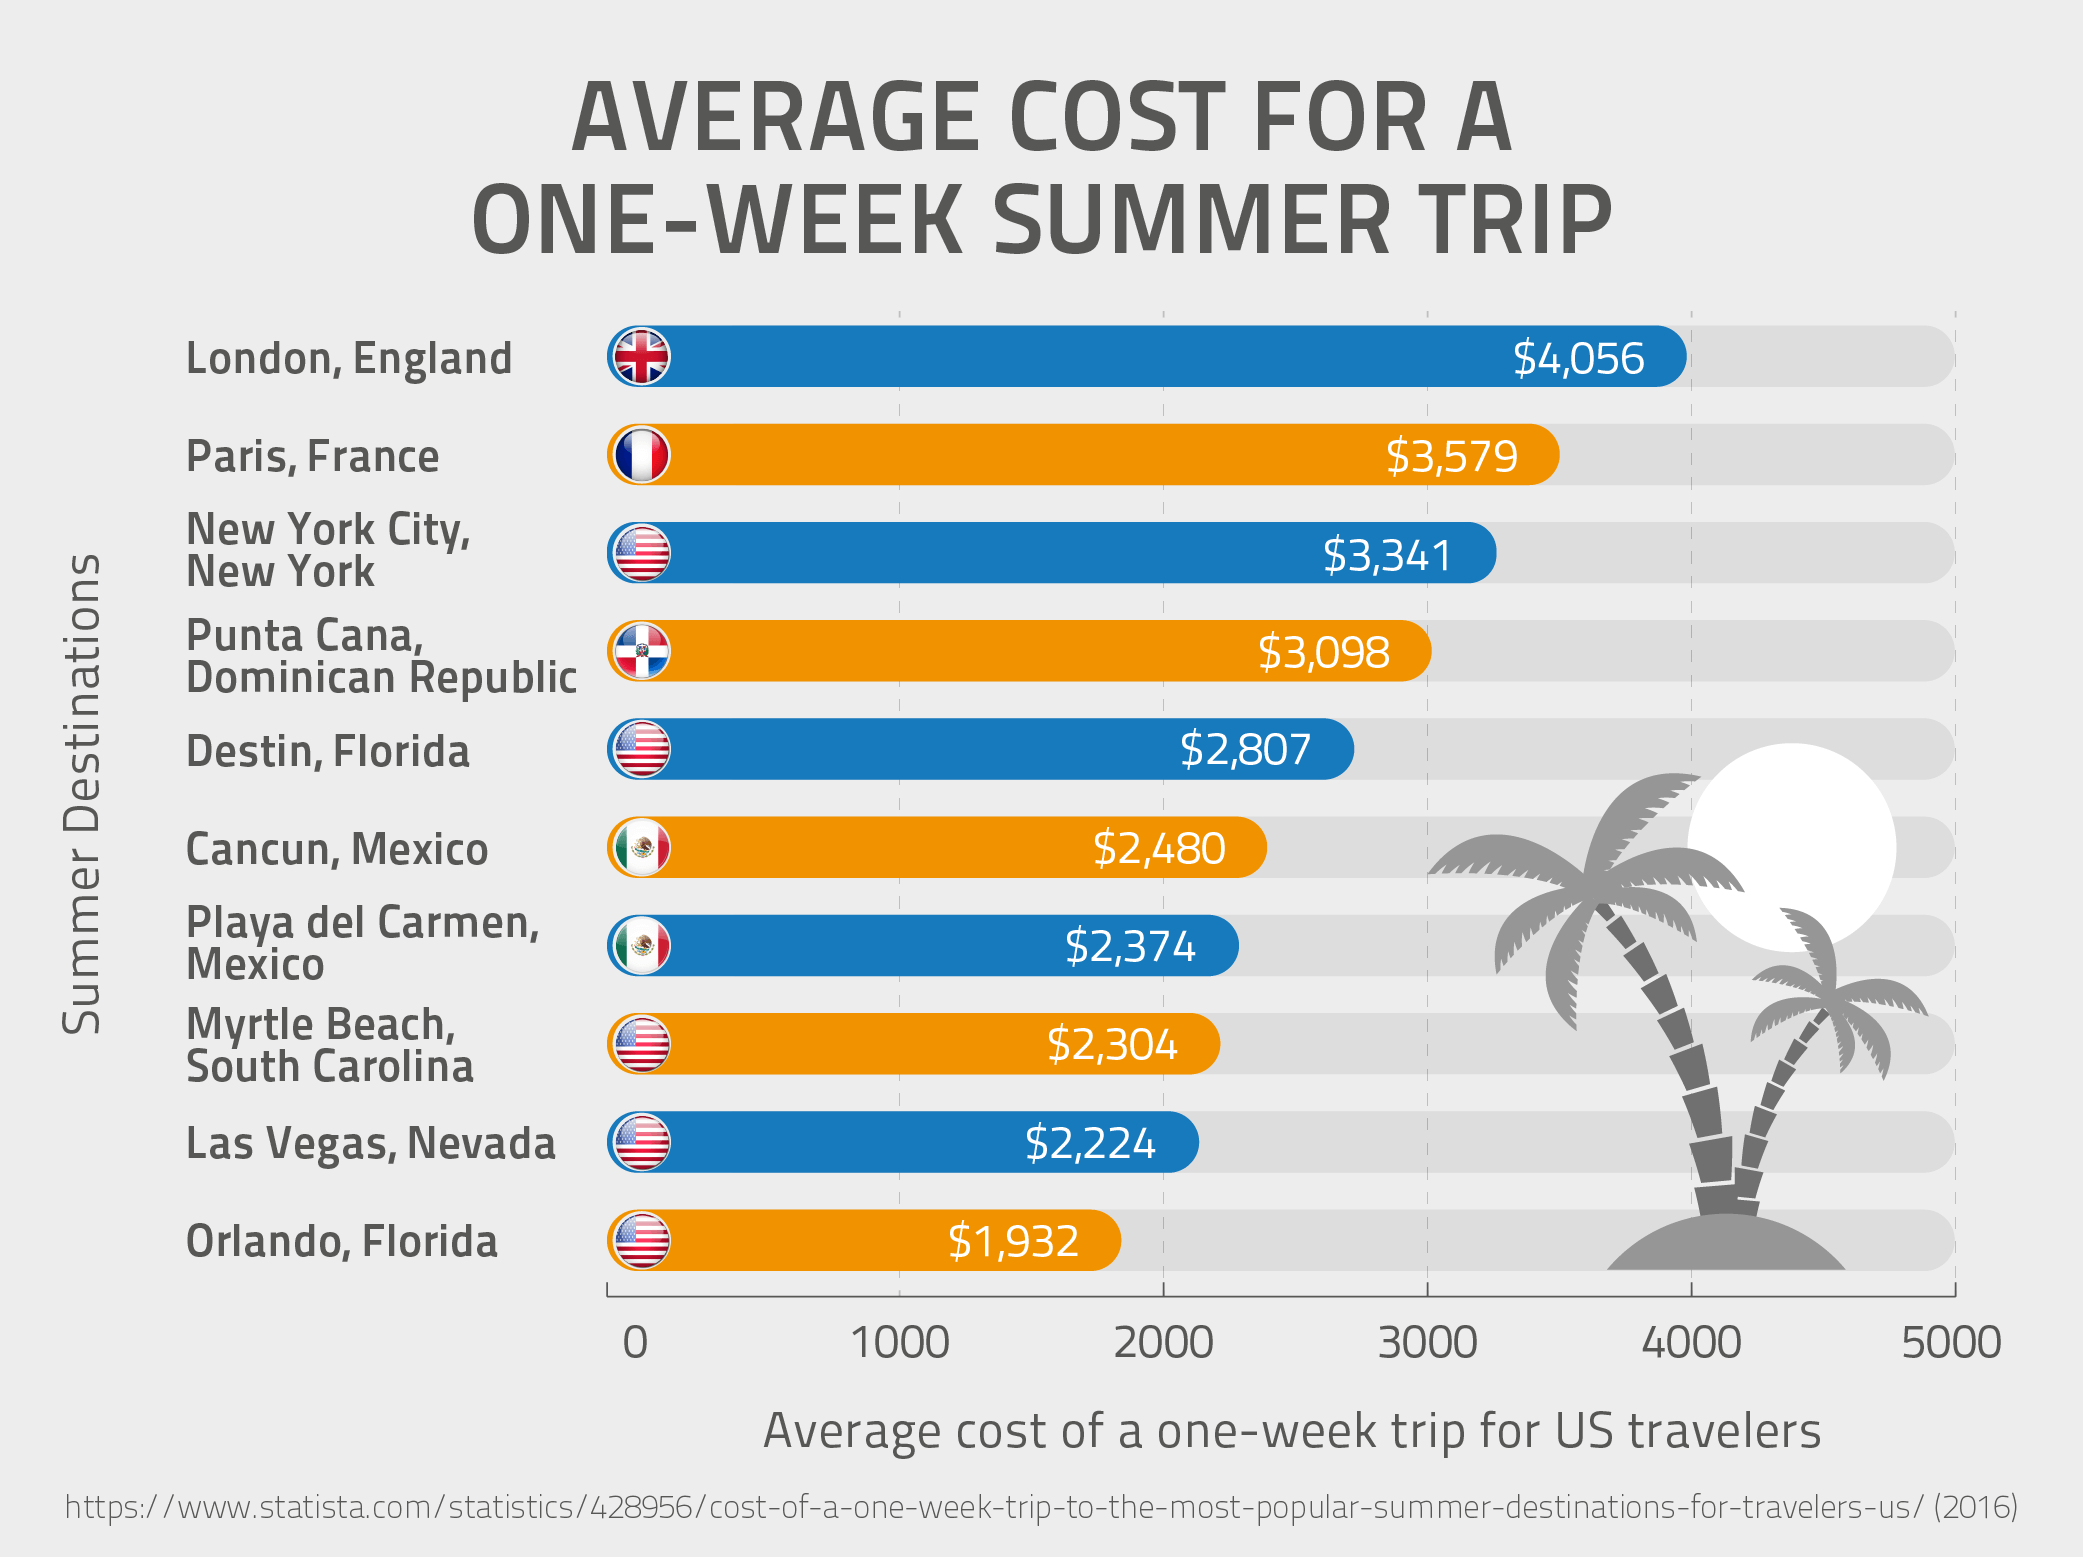 Average Cost for a One-Week Summer Trip